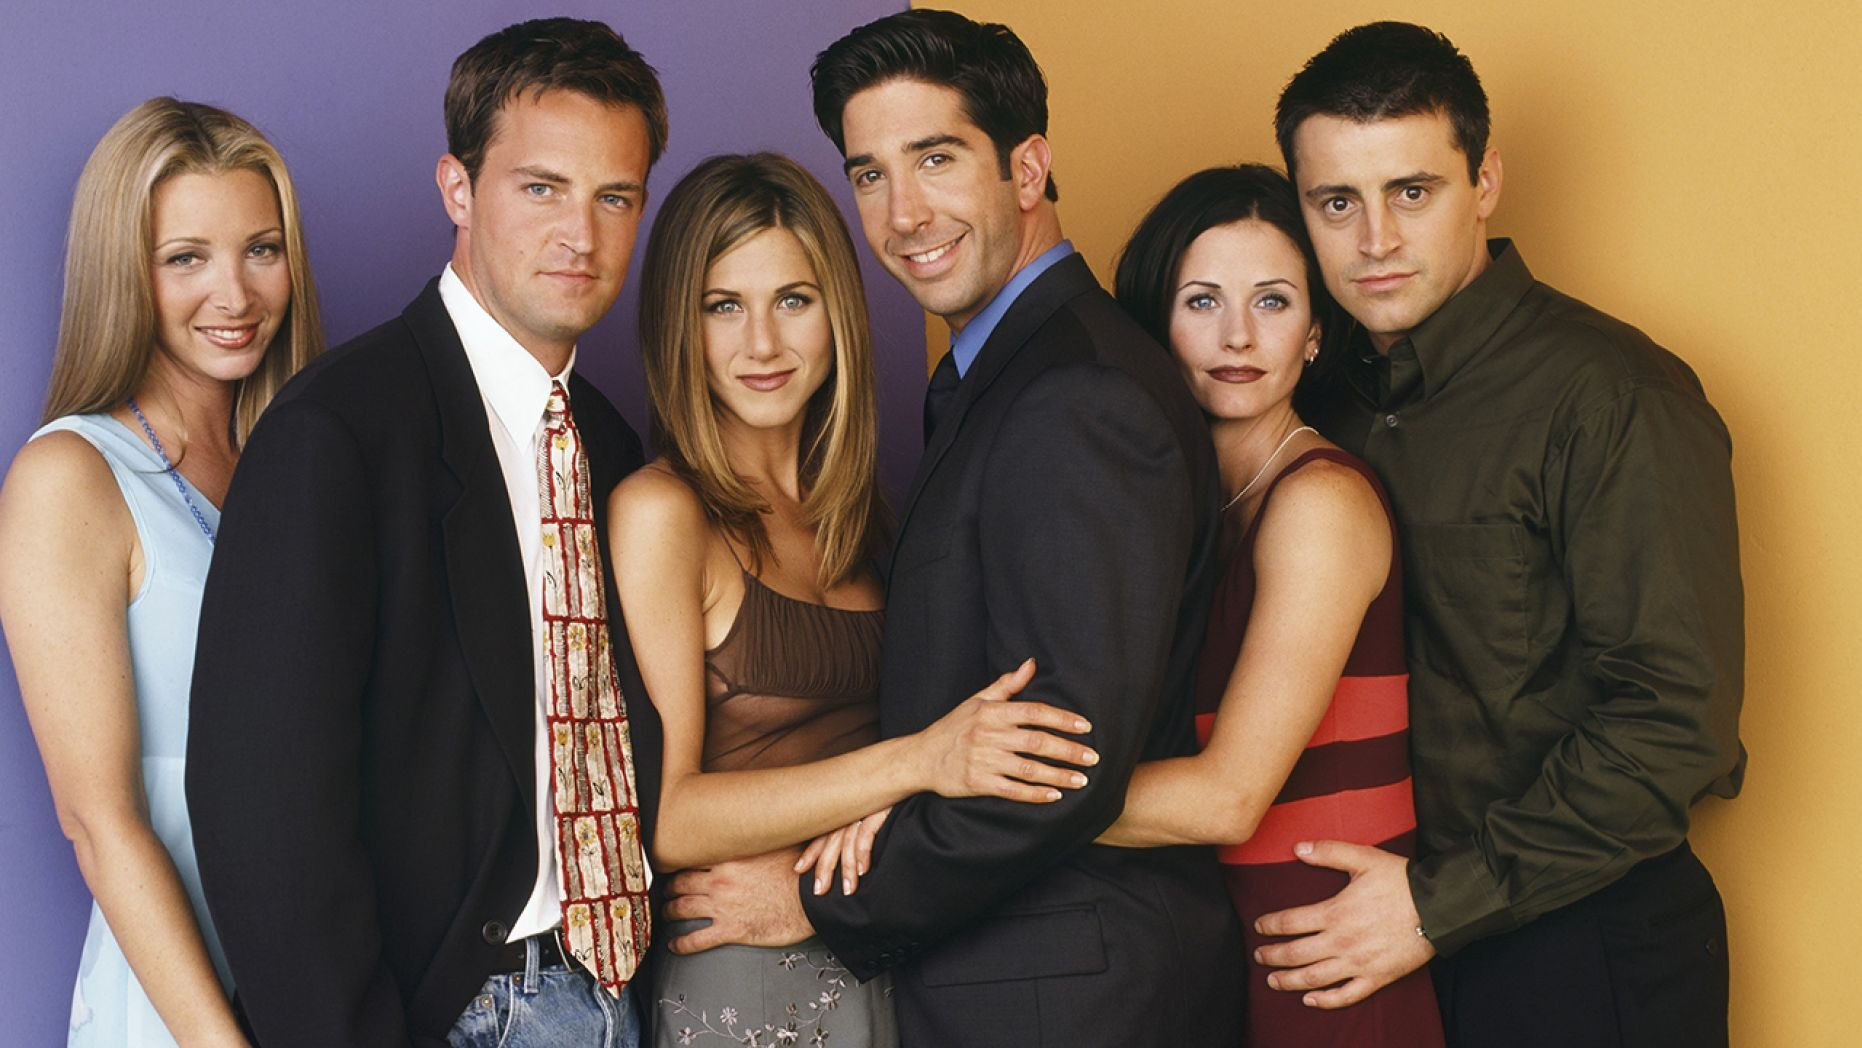 Westlake Legal Group friends-cast-getty-1 'Friends' reunion special still a maybe at HBO Max despite 'interest all around' Nate Day fox-news/person/jennifer-aniston fox-news/person/courteney-cox fox-news/entertainment/tv fox-news/entertainment/genres/streaming fox-news/entertainment/genres/sitcom fox-news/entertainment/genres/comedy fox-news/entertainment/friends fox-news/entertainment fox news fnc/entertainment fnc article 1e59b16f-955a-57a7-8d1a-07a277c0652c